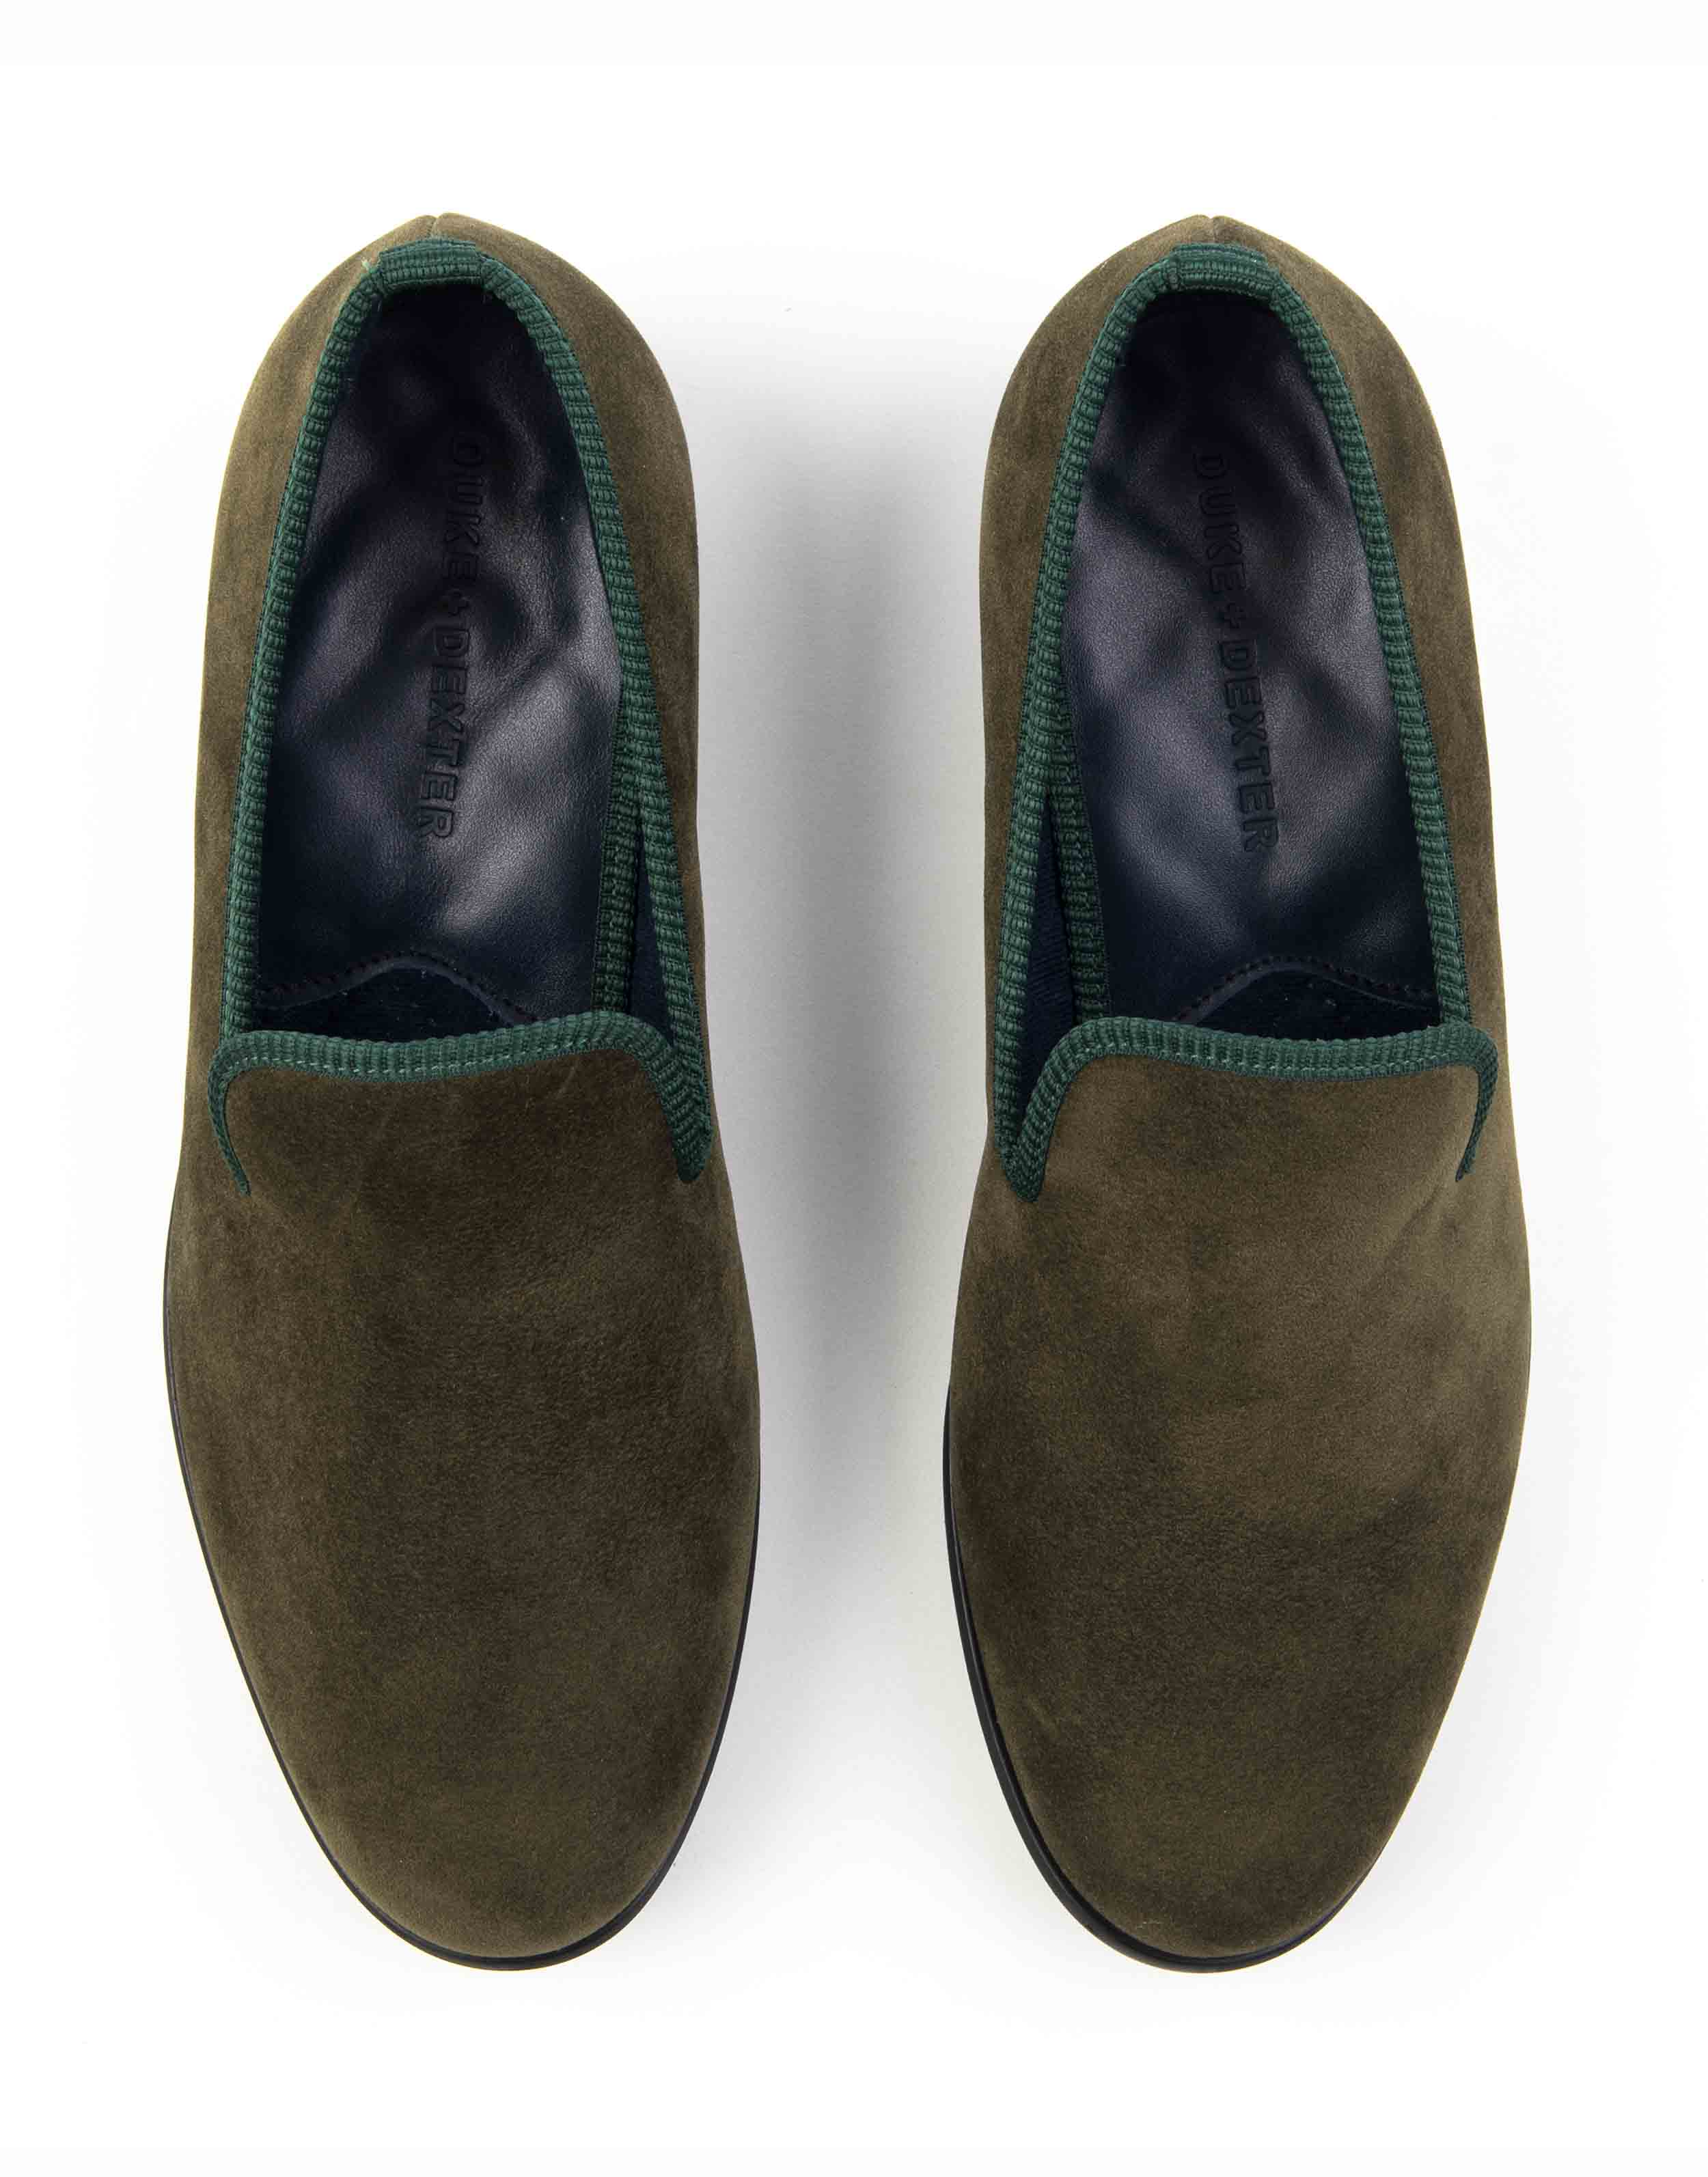 GREEN SUEDE LOAFERS4